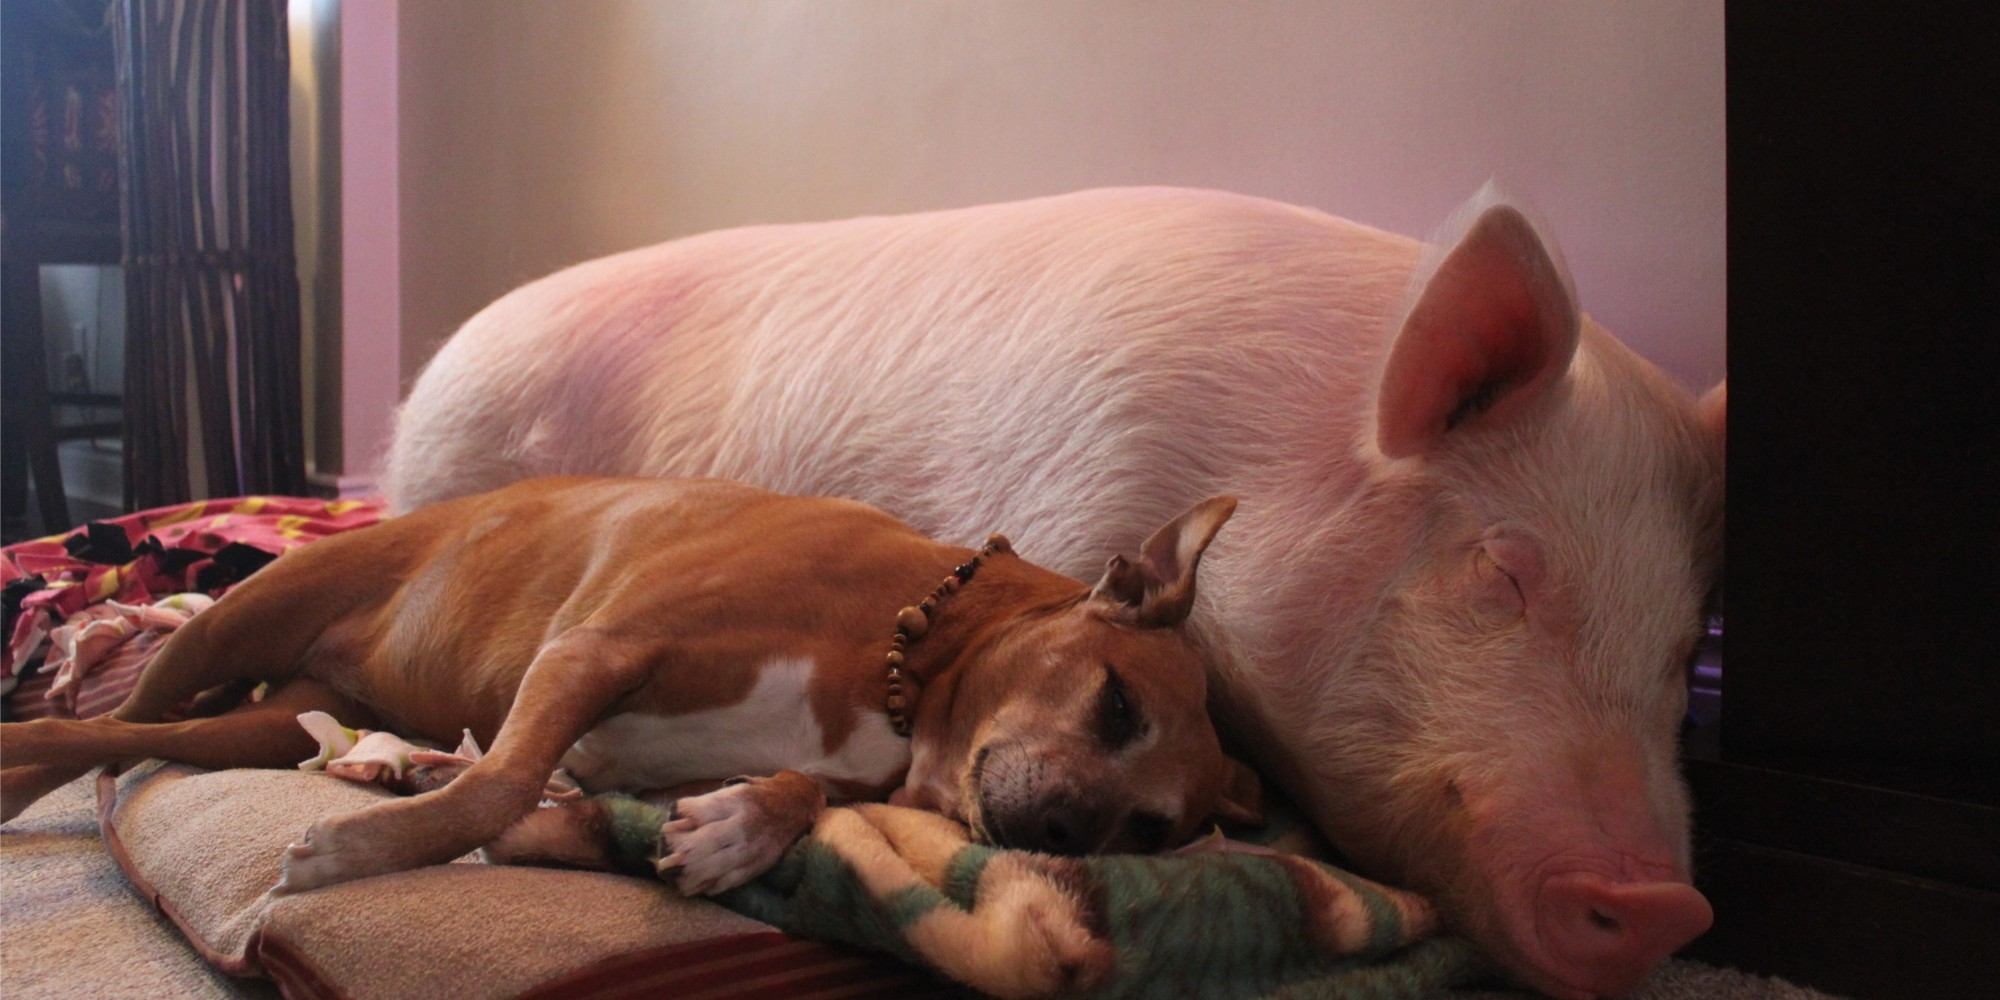 animals are more than mere things. let's treat them that way | huffpost